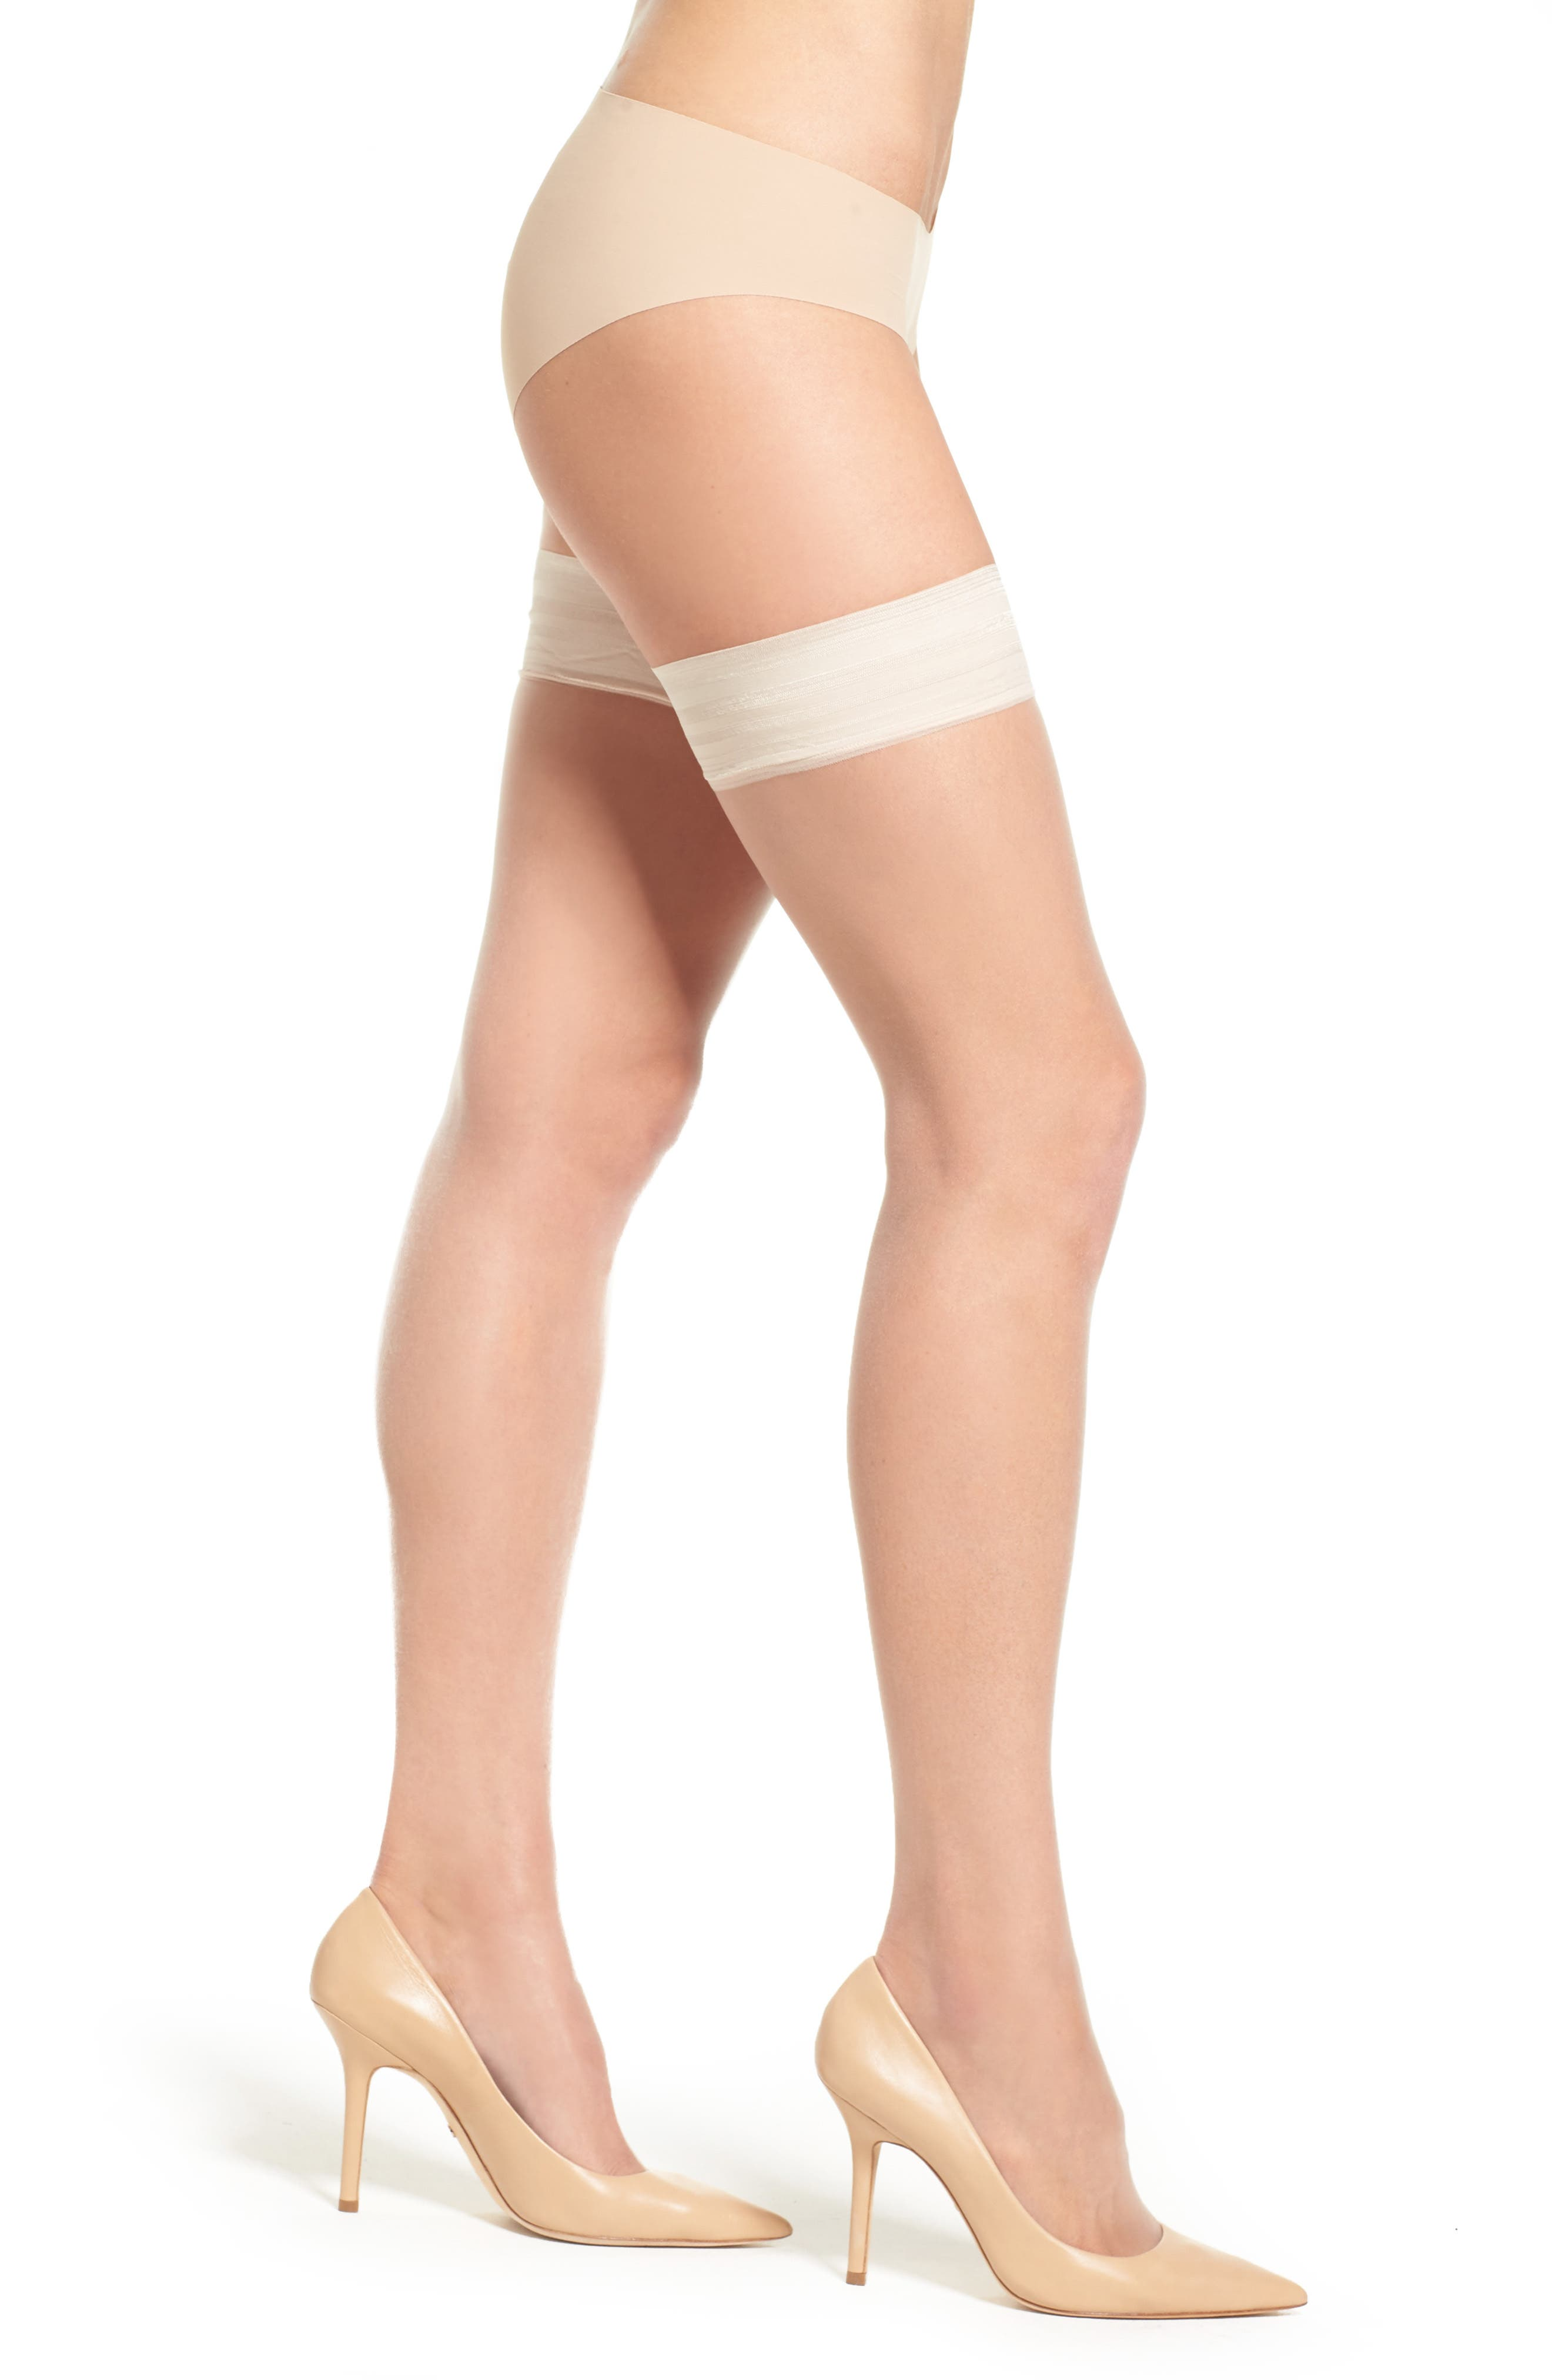 Donna Karan Beyond The Nudes Stay-Up Stockings,                             Main thumbnail 1, color,                             241